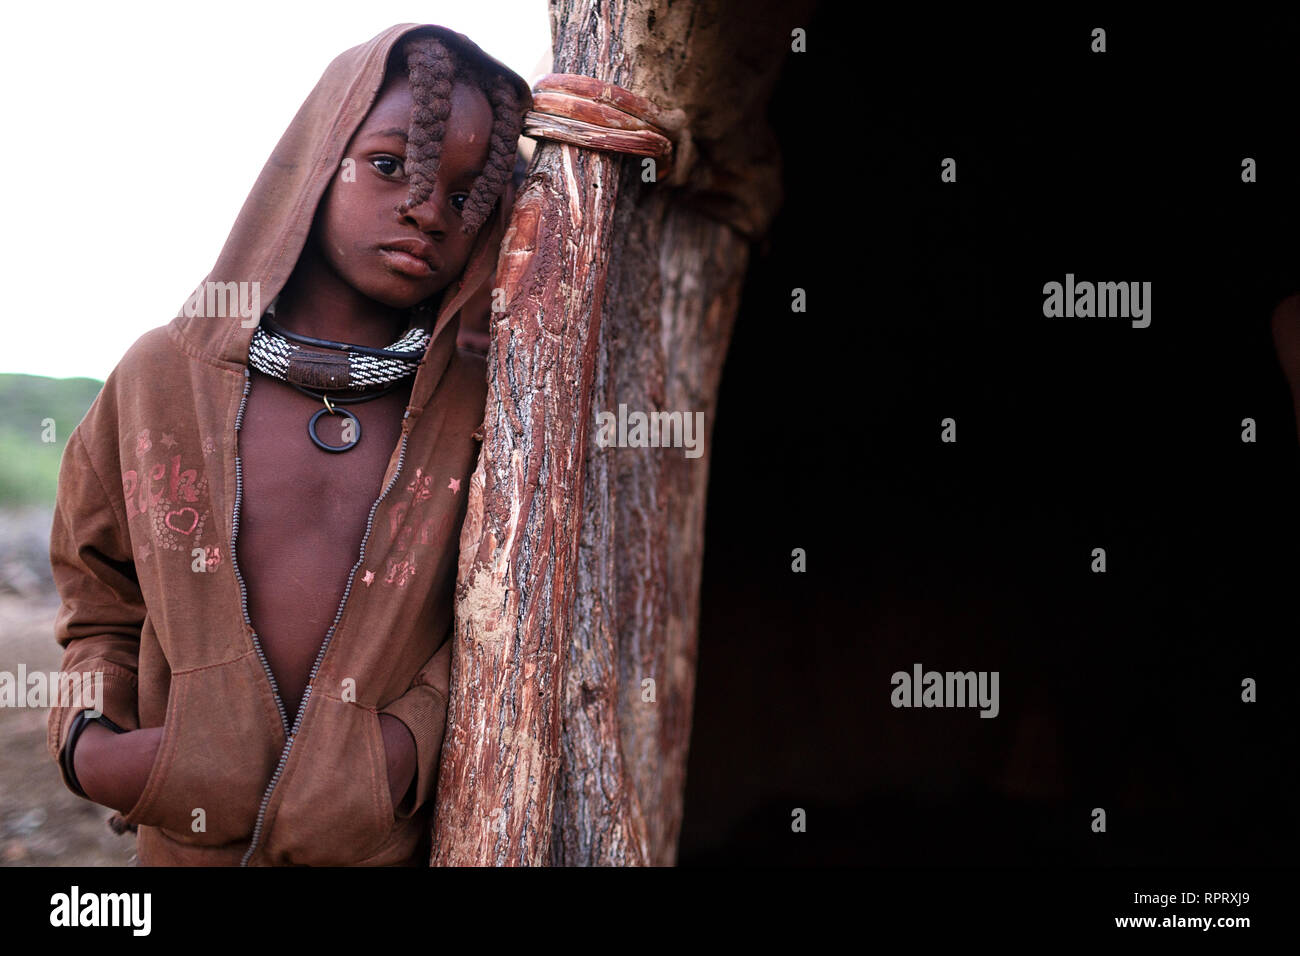 Himba girl with two braids and jewellery, portrait, Himba hut, Himba village, Northern Namibia - Stock Image